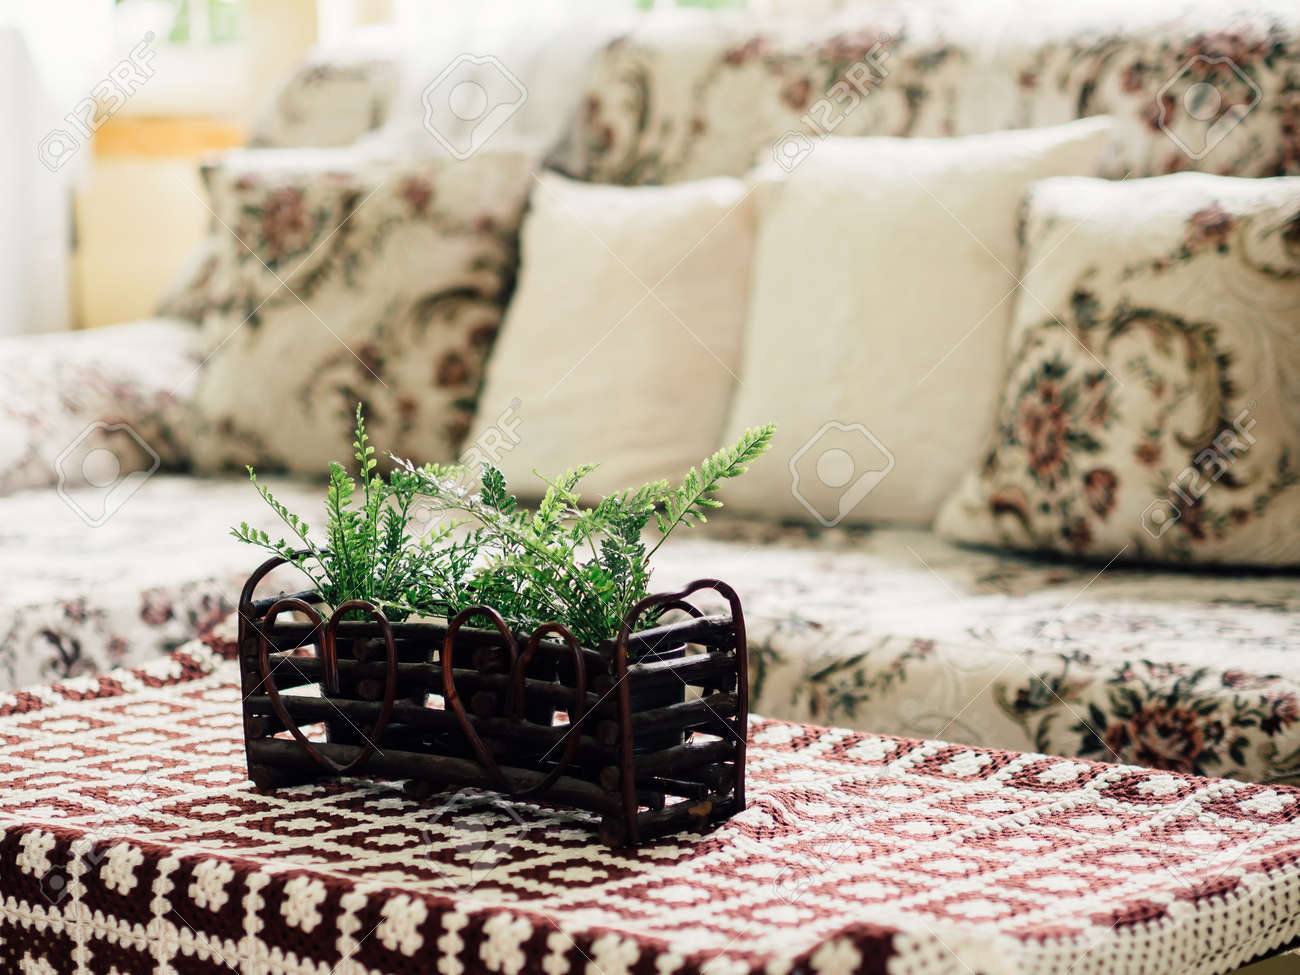 High Quality Fake Plastic Plants Decorated On The Table And Sofa Set In Living Room.  Stock Photo